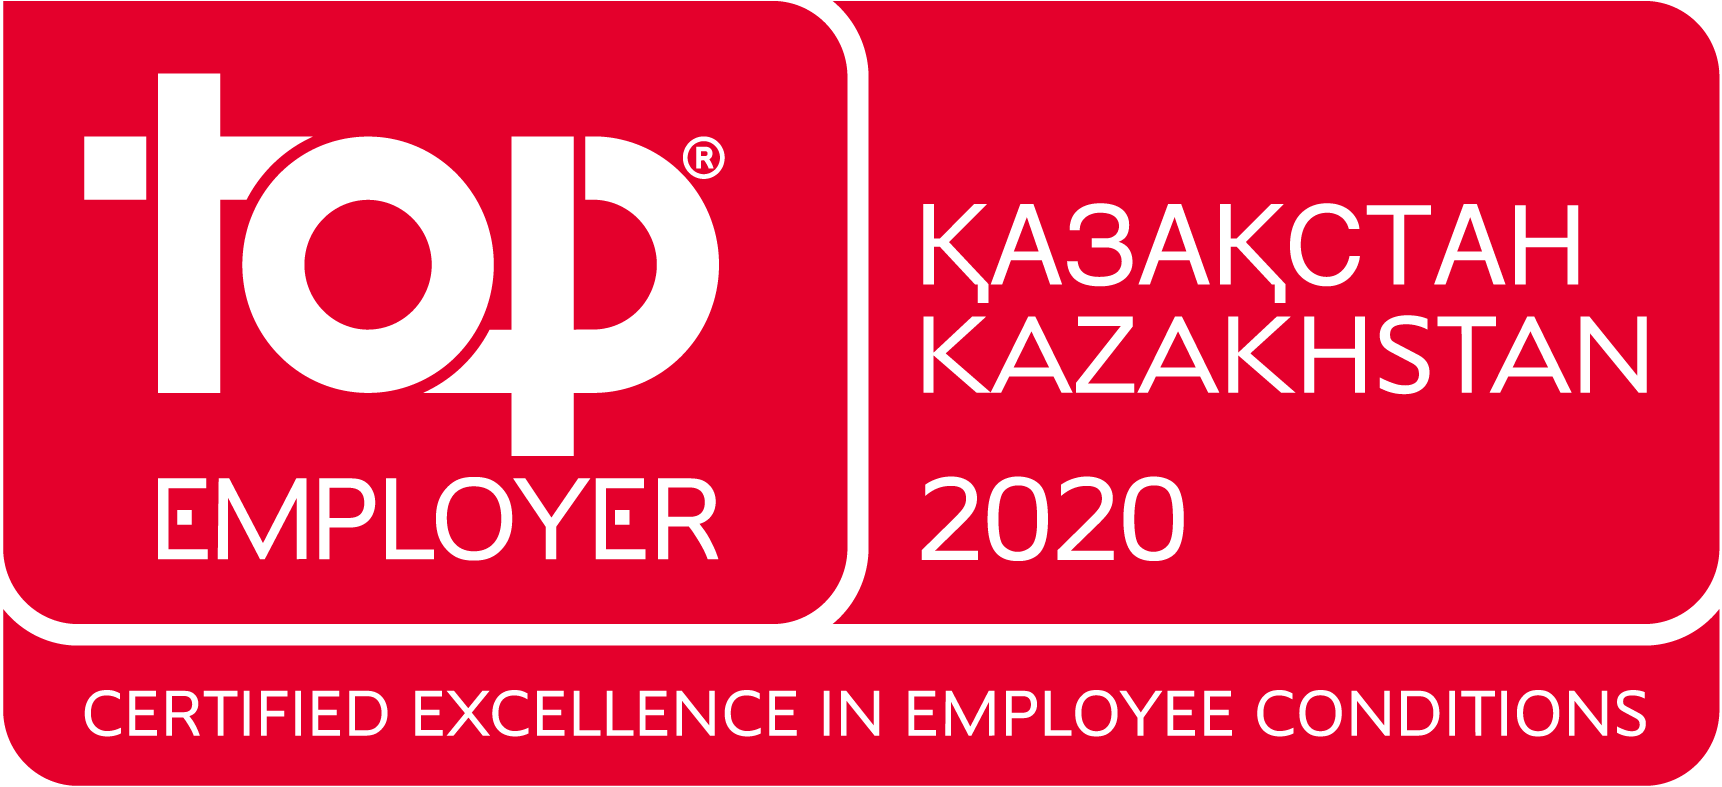 Top_Employer_Kazakhstan_2020